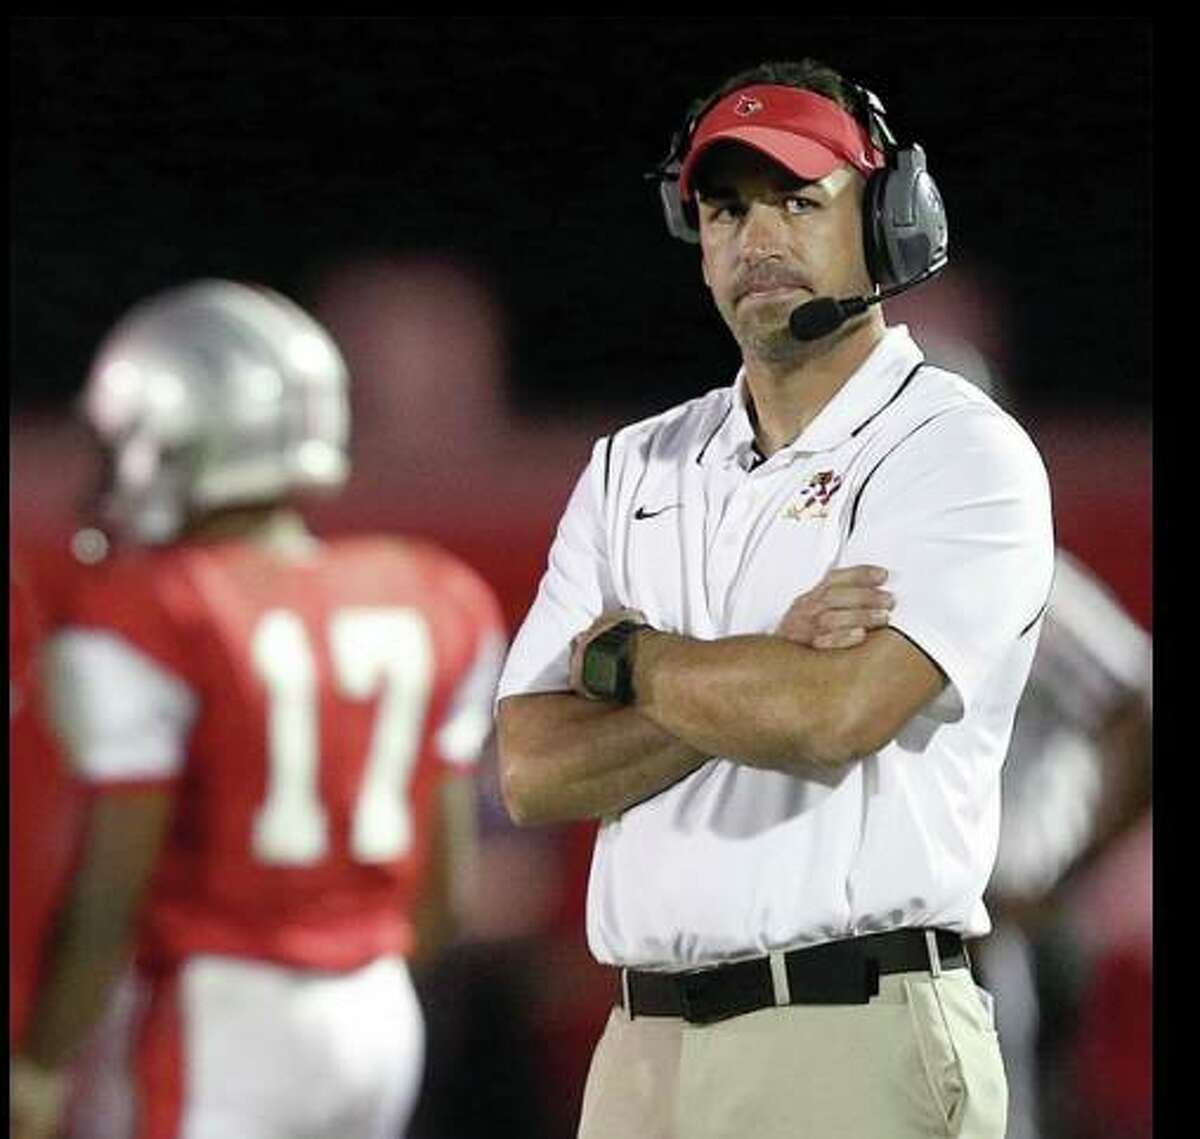 Alton High School head football coach Eric Dickerson's team will forfeit Friday's scheduled game because of a lack of available varsity players. He is shown during a previous season.